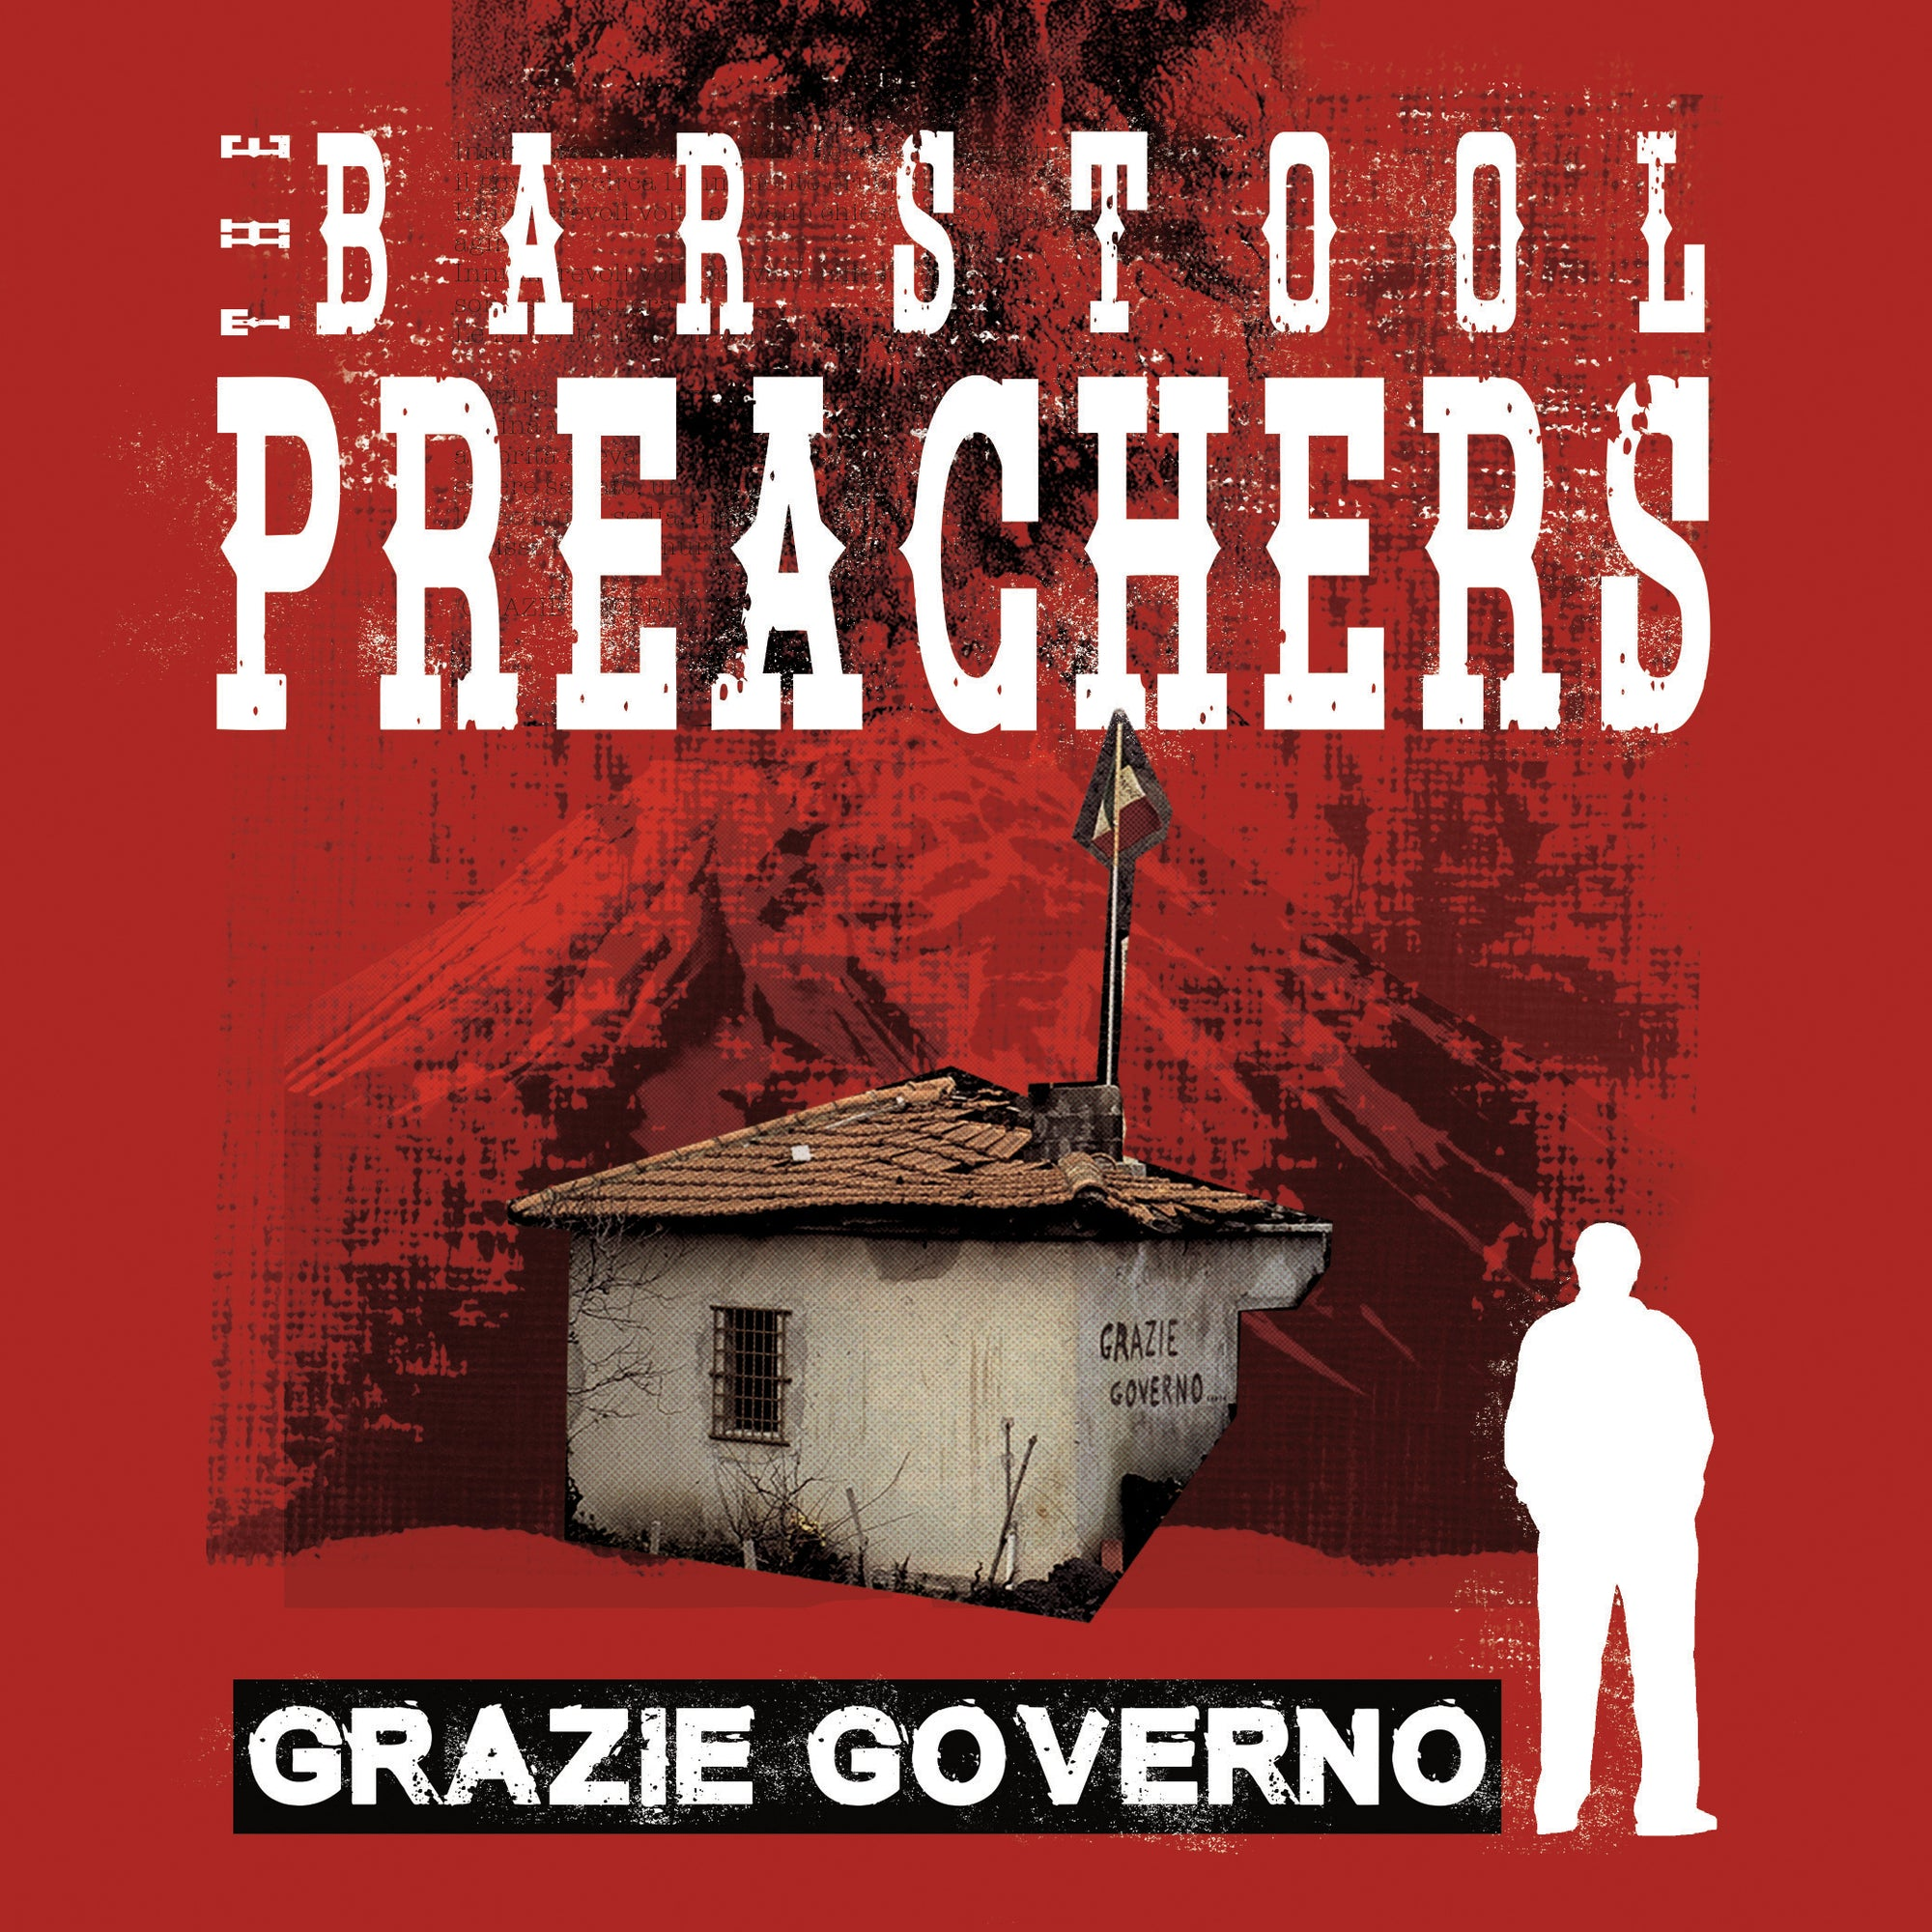 The Bar Stool Preachers - Grazie Governo LP / CD